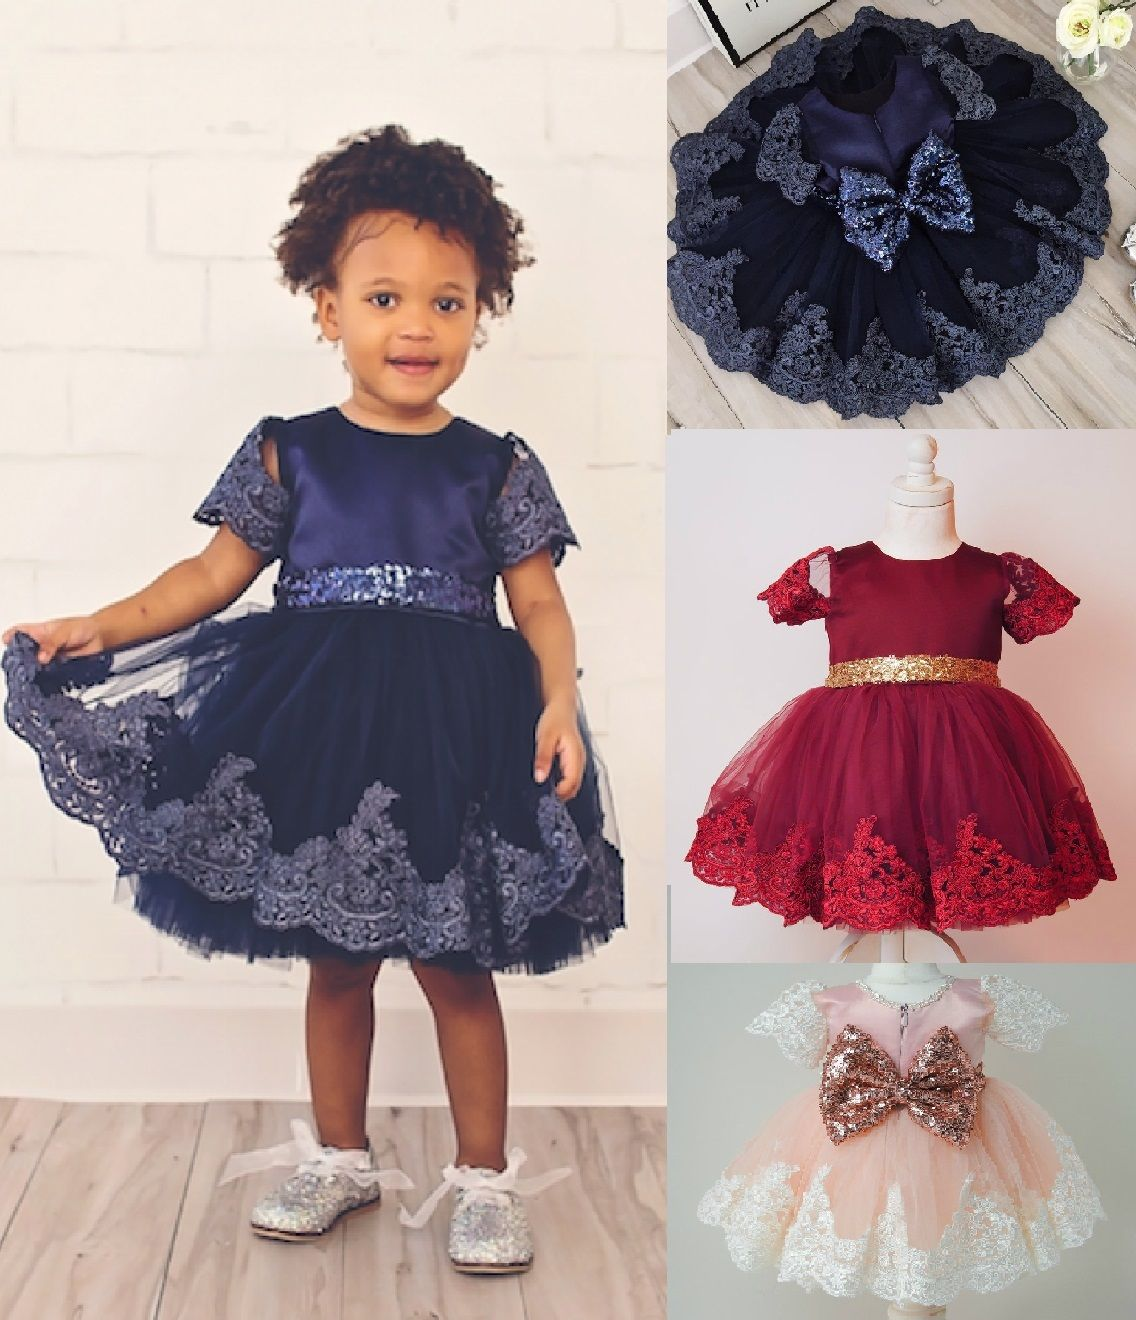 2018 New Baby girl clothes Princess Dress Clothes Short Sleeve Lace Bow Ball Gown Tutu Party Dress Toddler Kids Fancy Dress 0-7Y